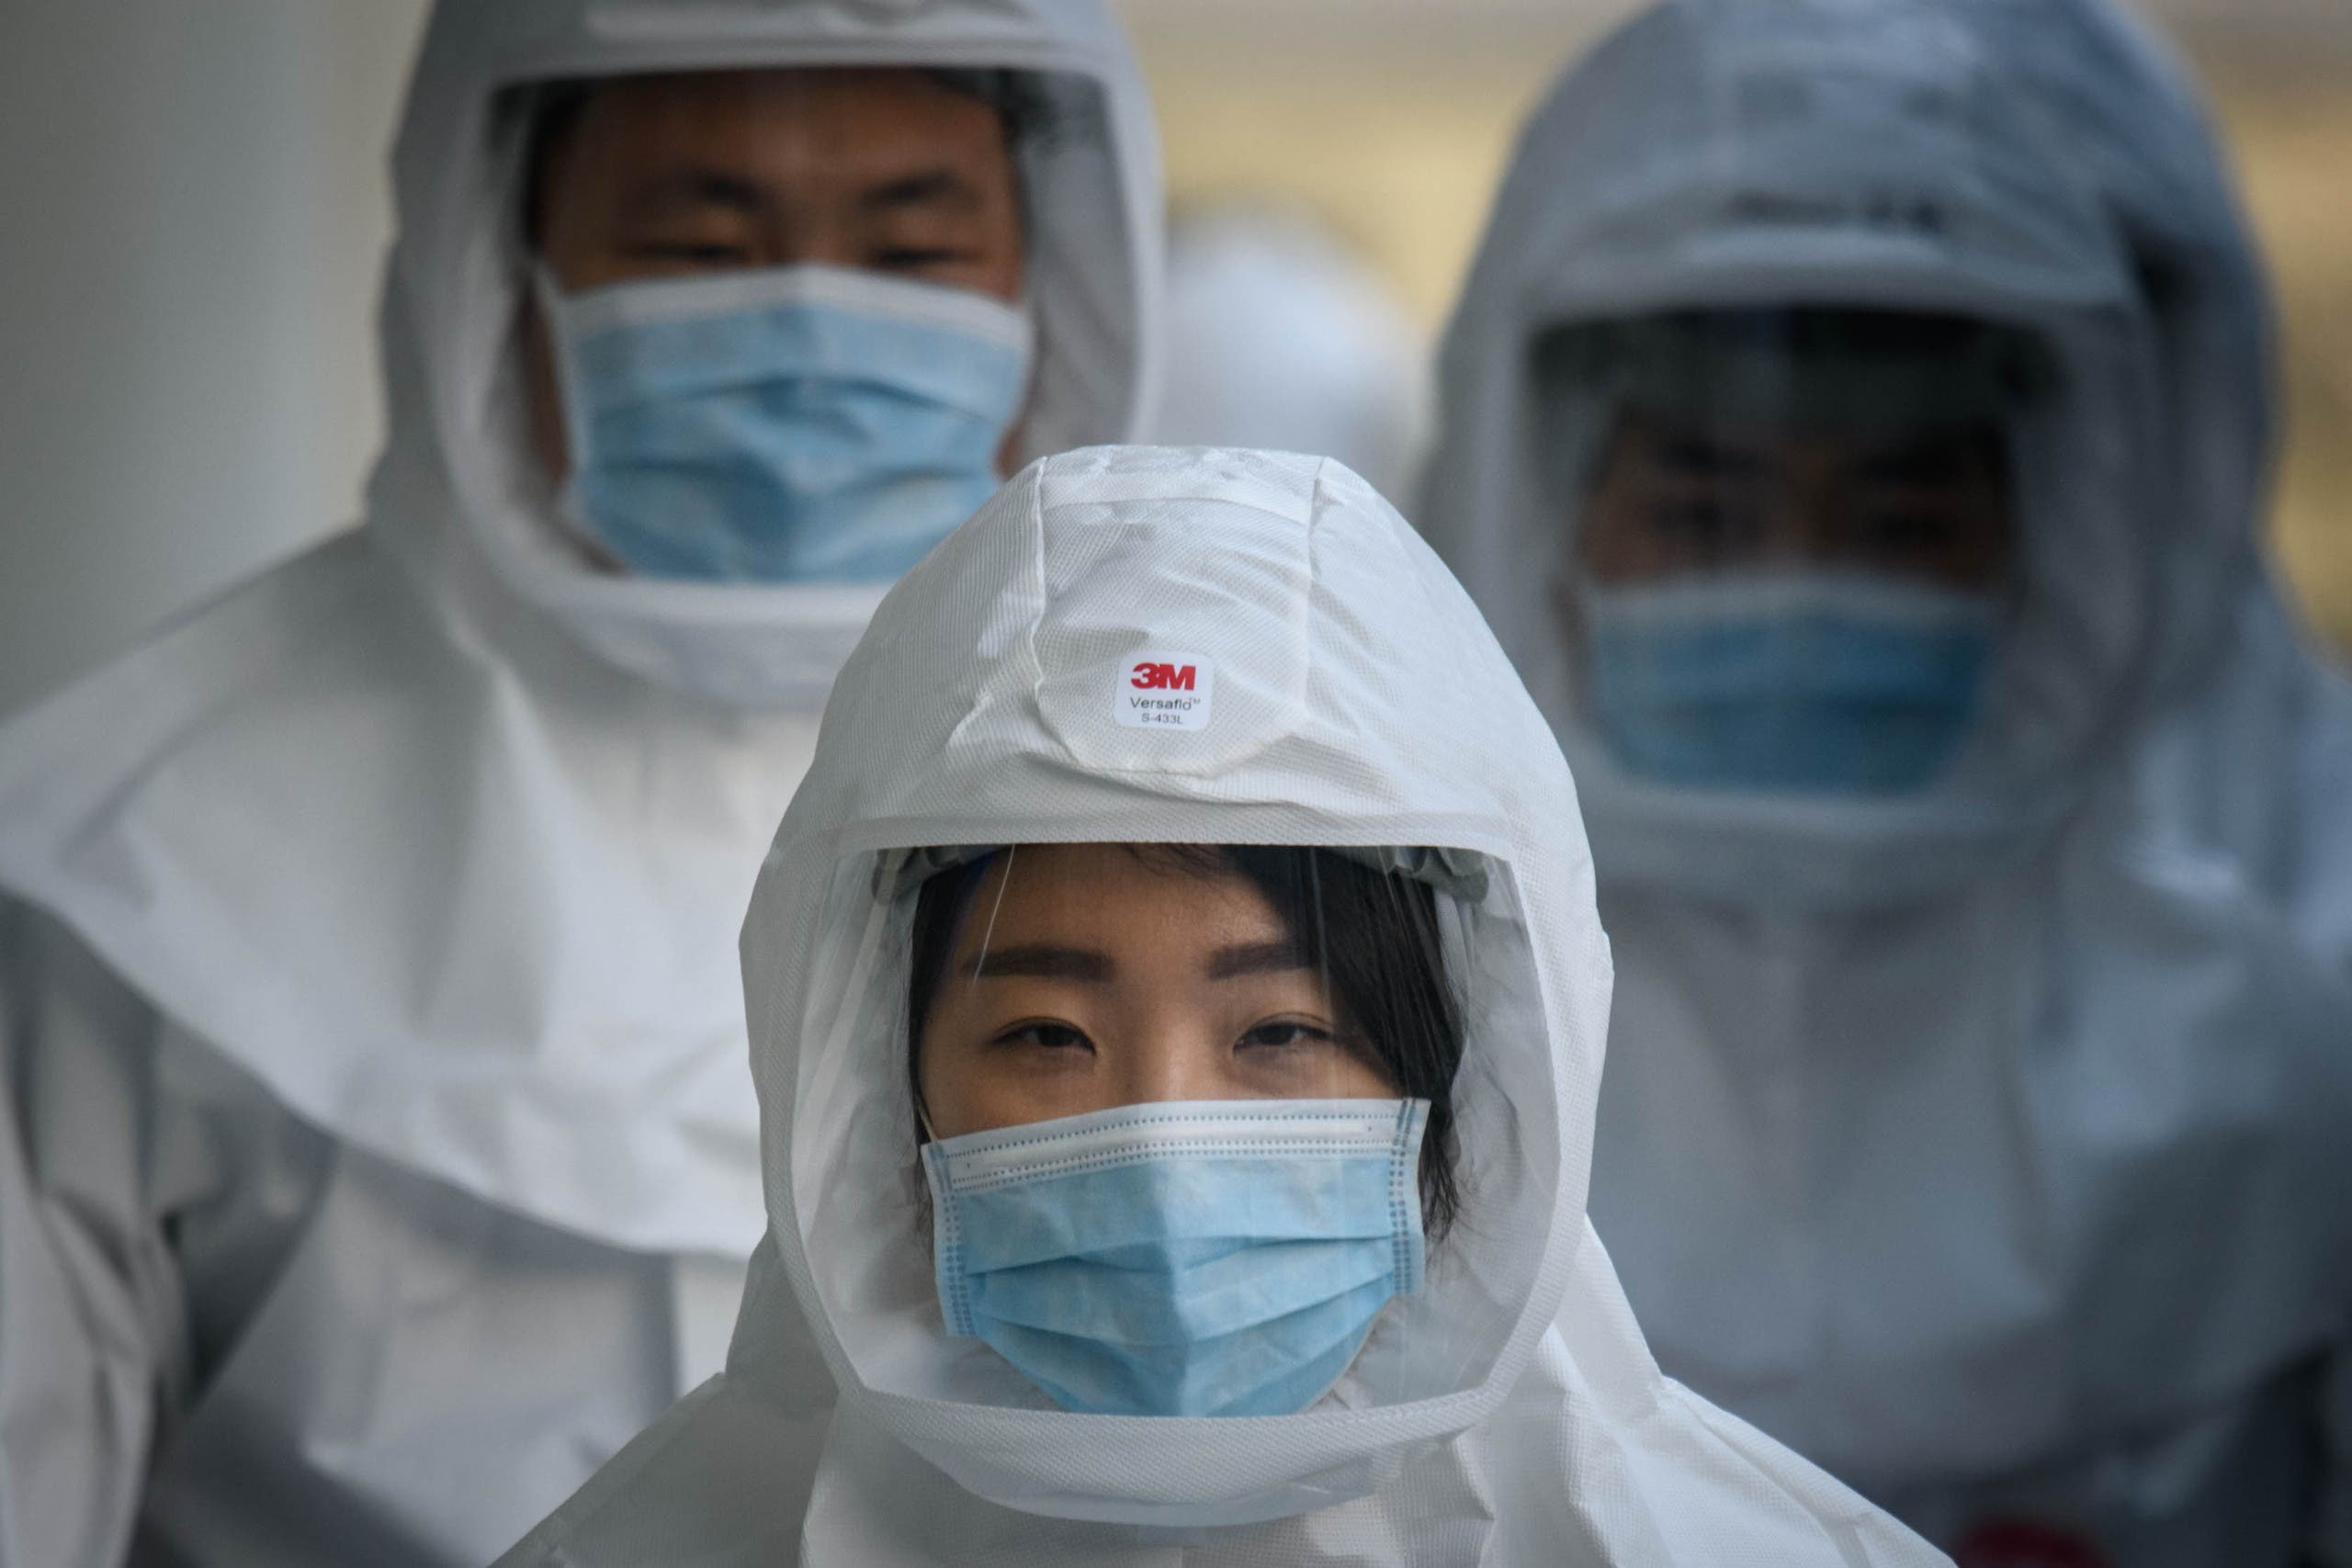 Medical workers wearing protective clothing against COVID-19 in Daegu, South Korea. (Photo: AFP)